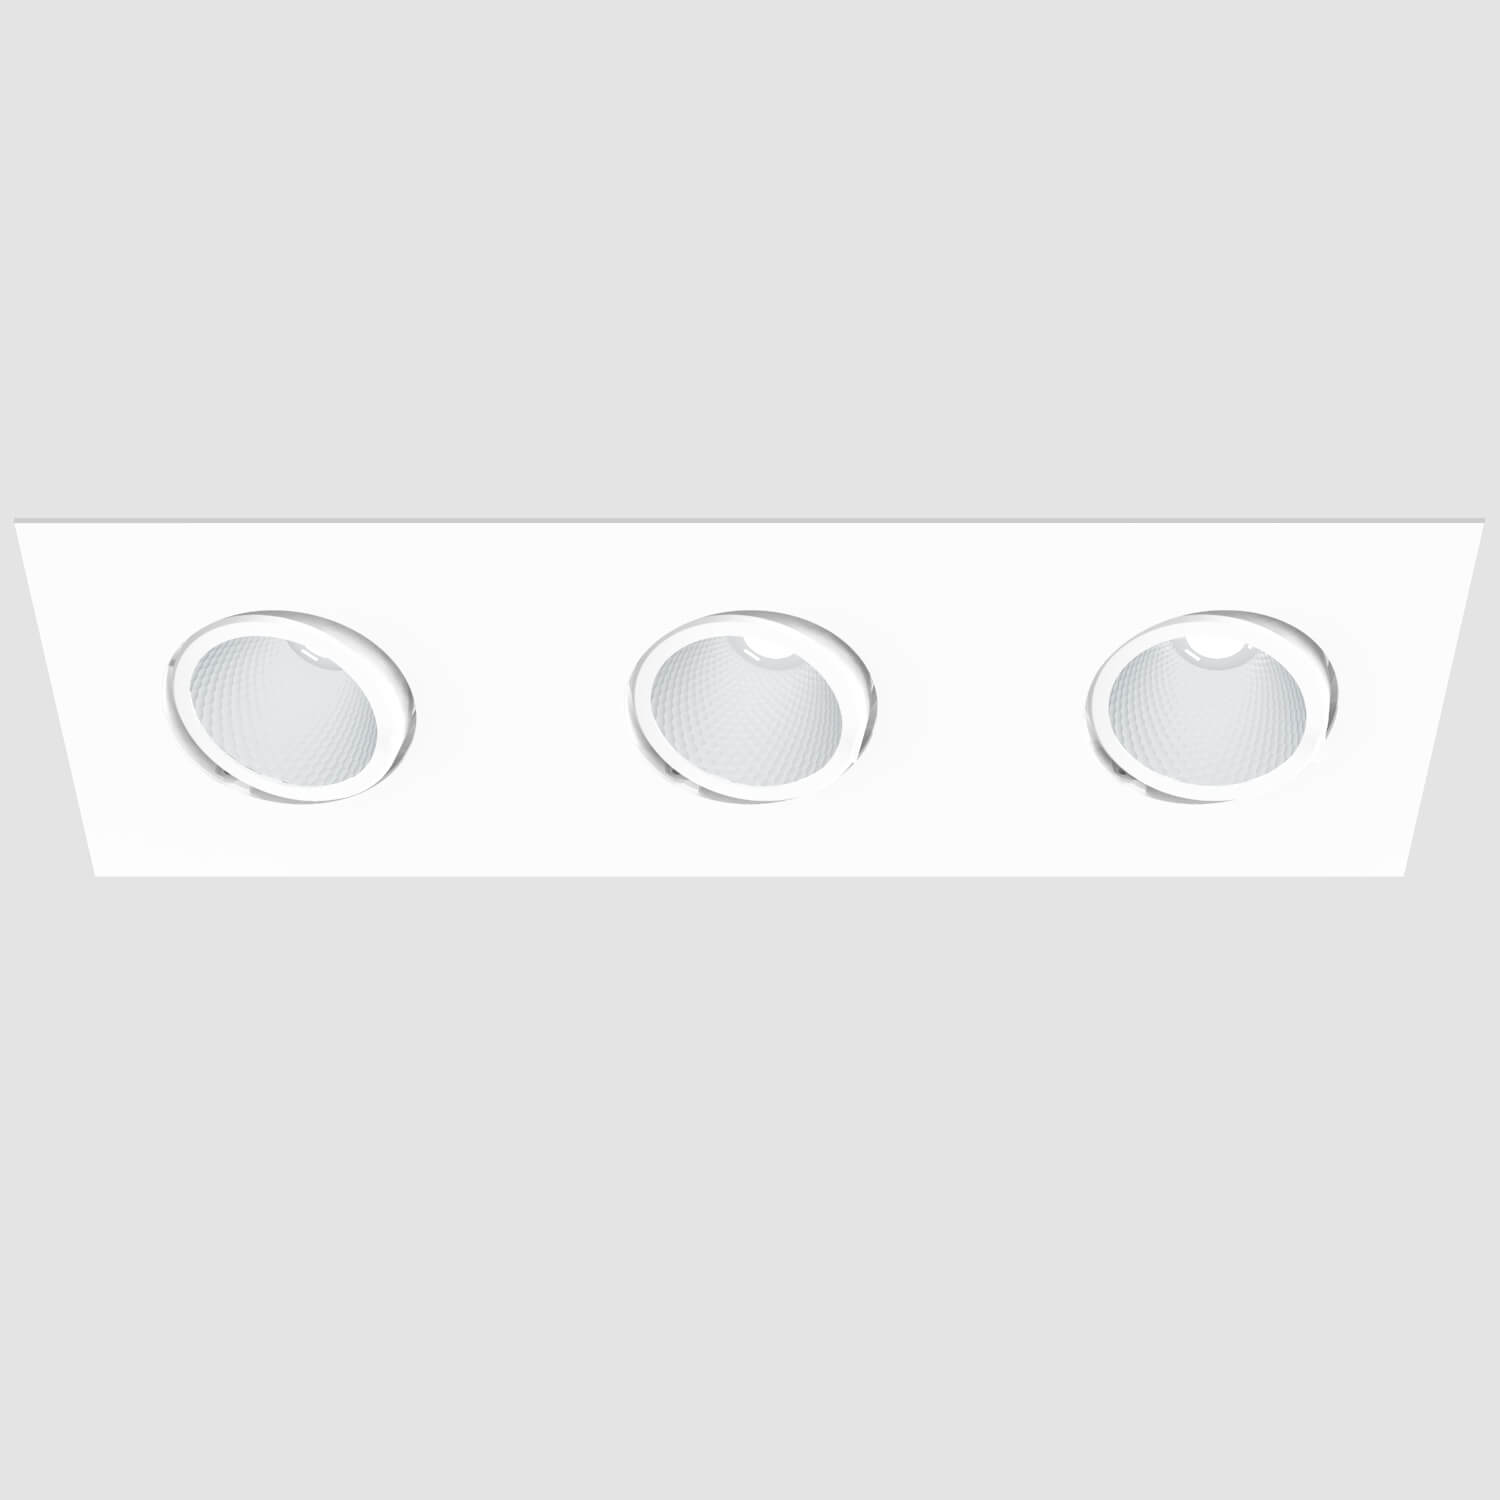 Proyectores y downlights LED SENA 3X